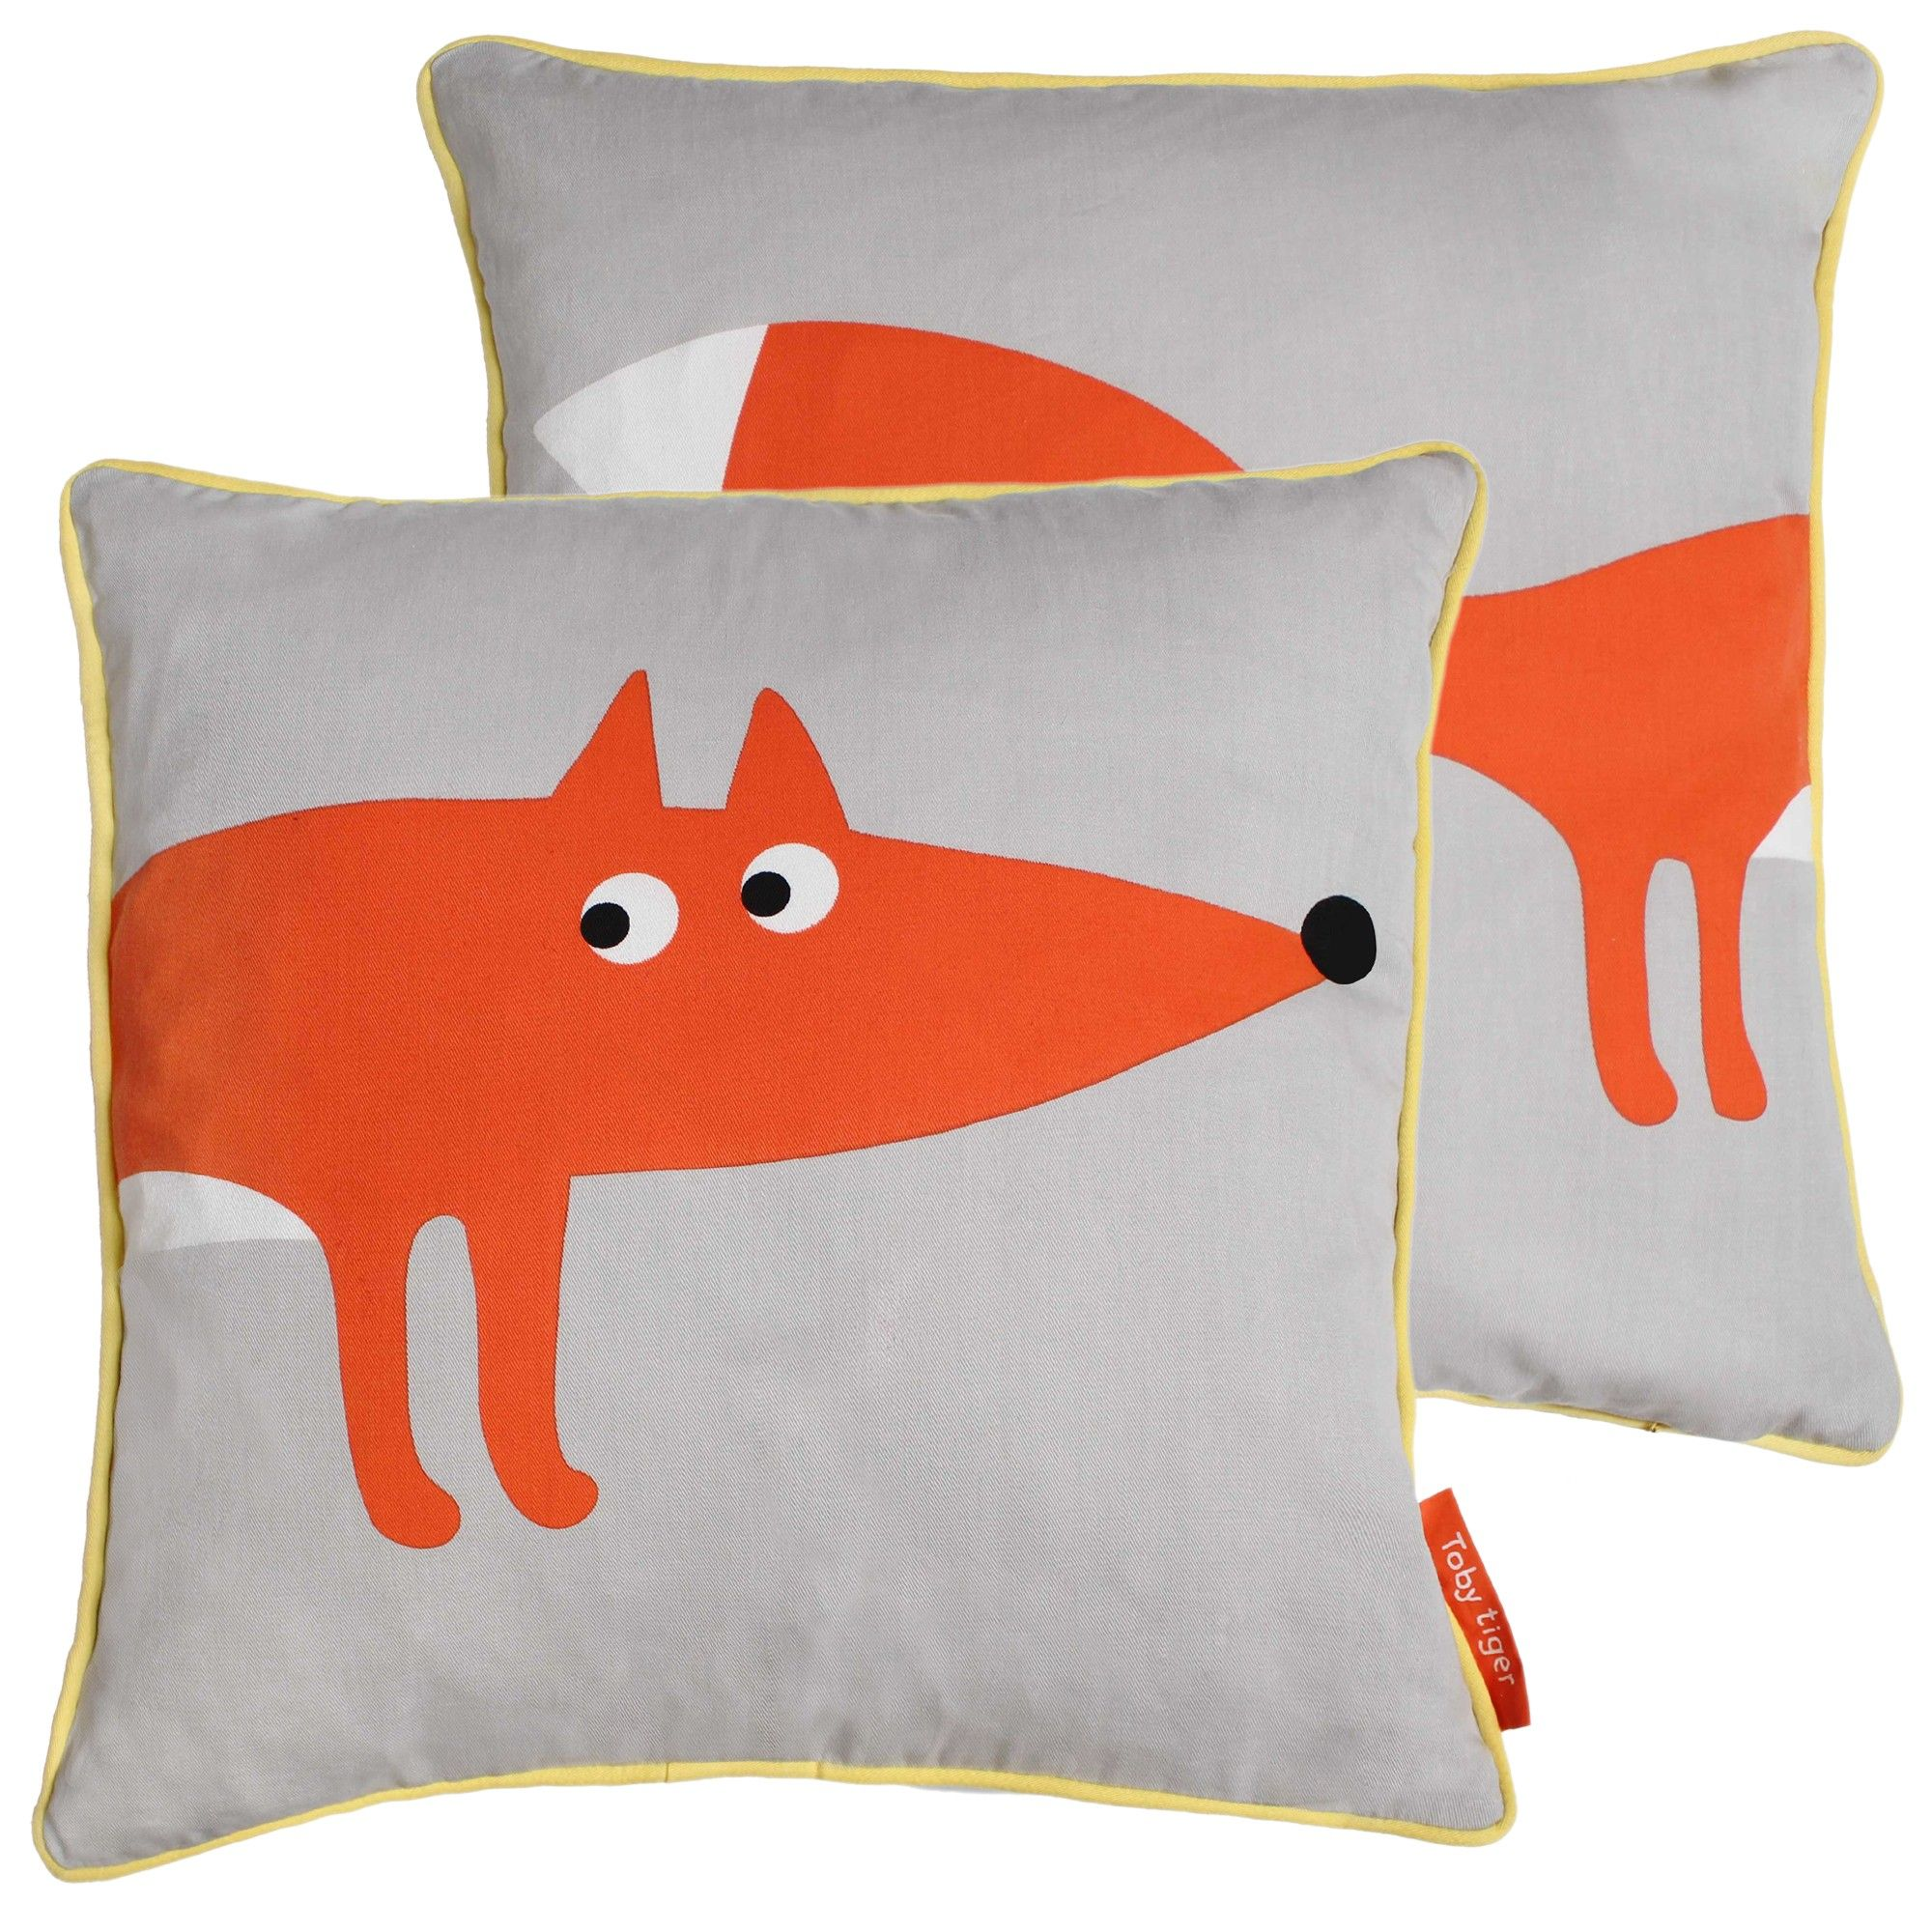 organic the cotton licensees pillow organature quilts australian and pillows hi campaign loft made